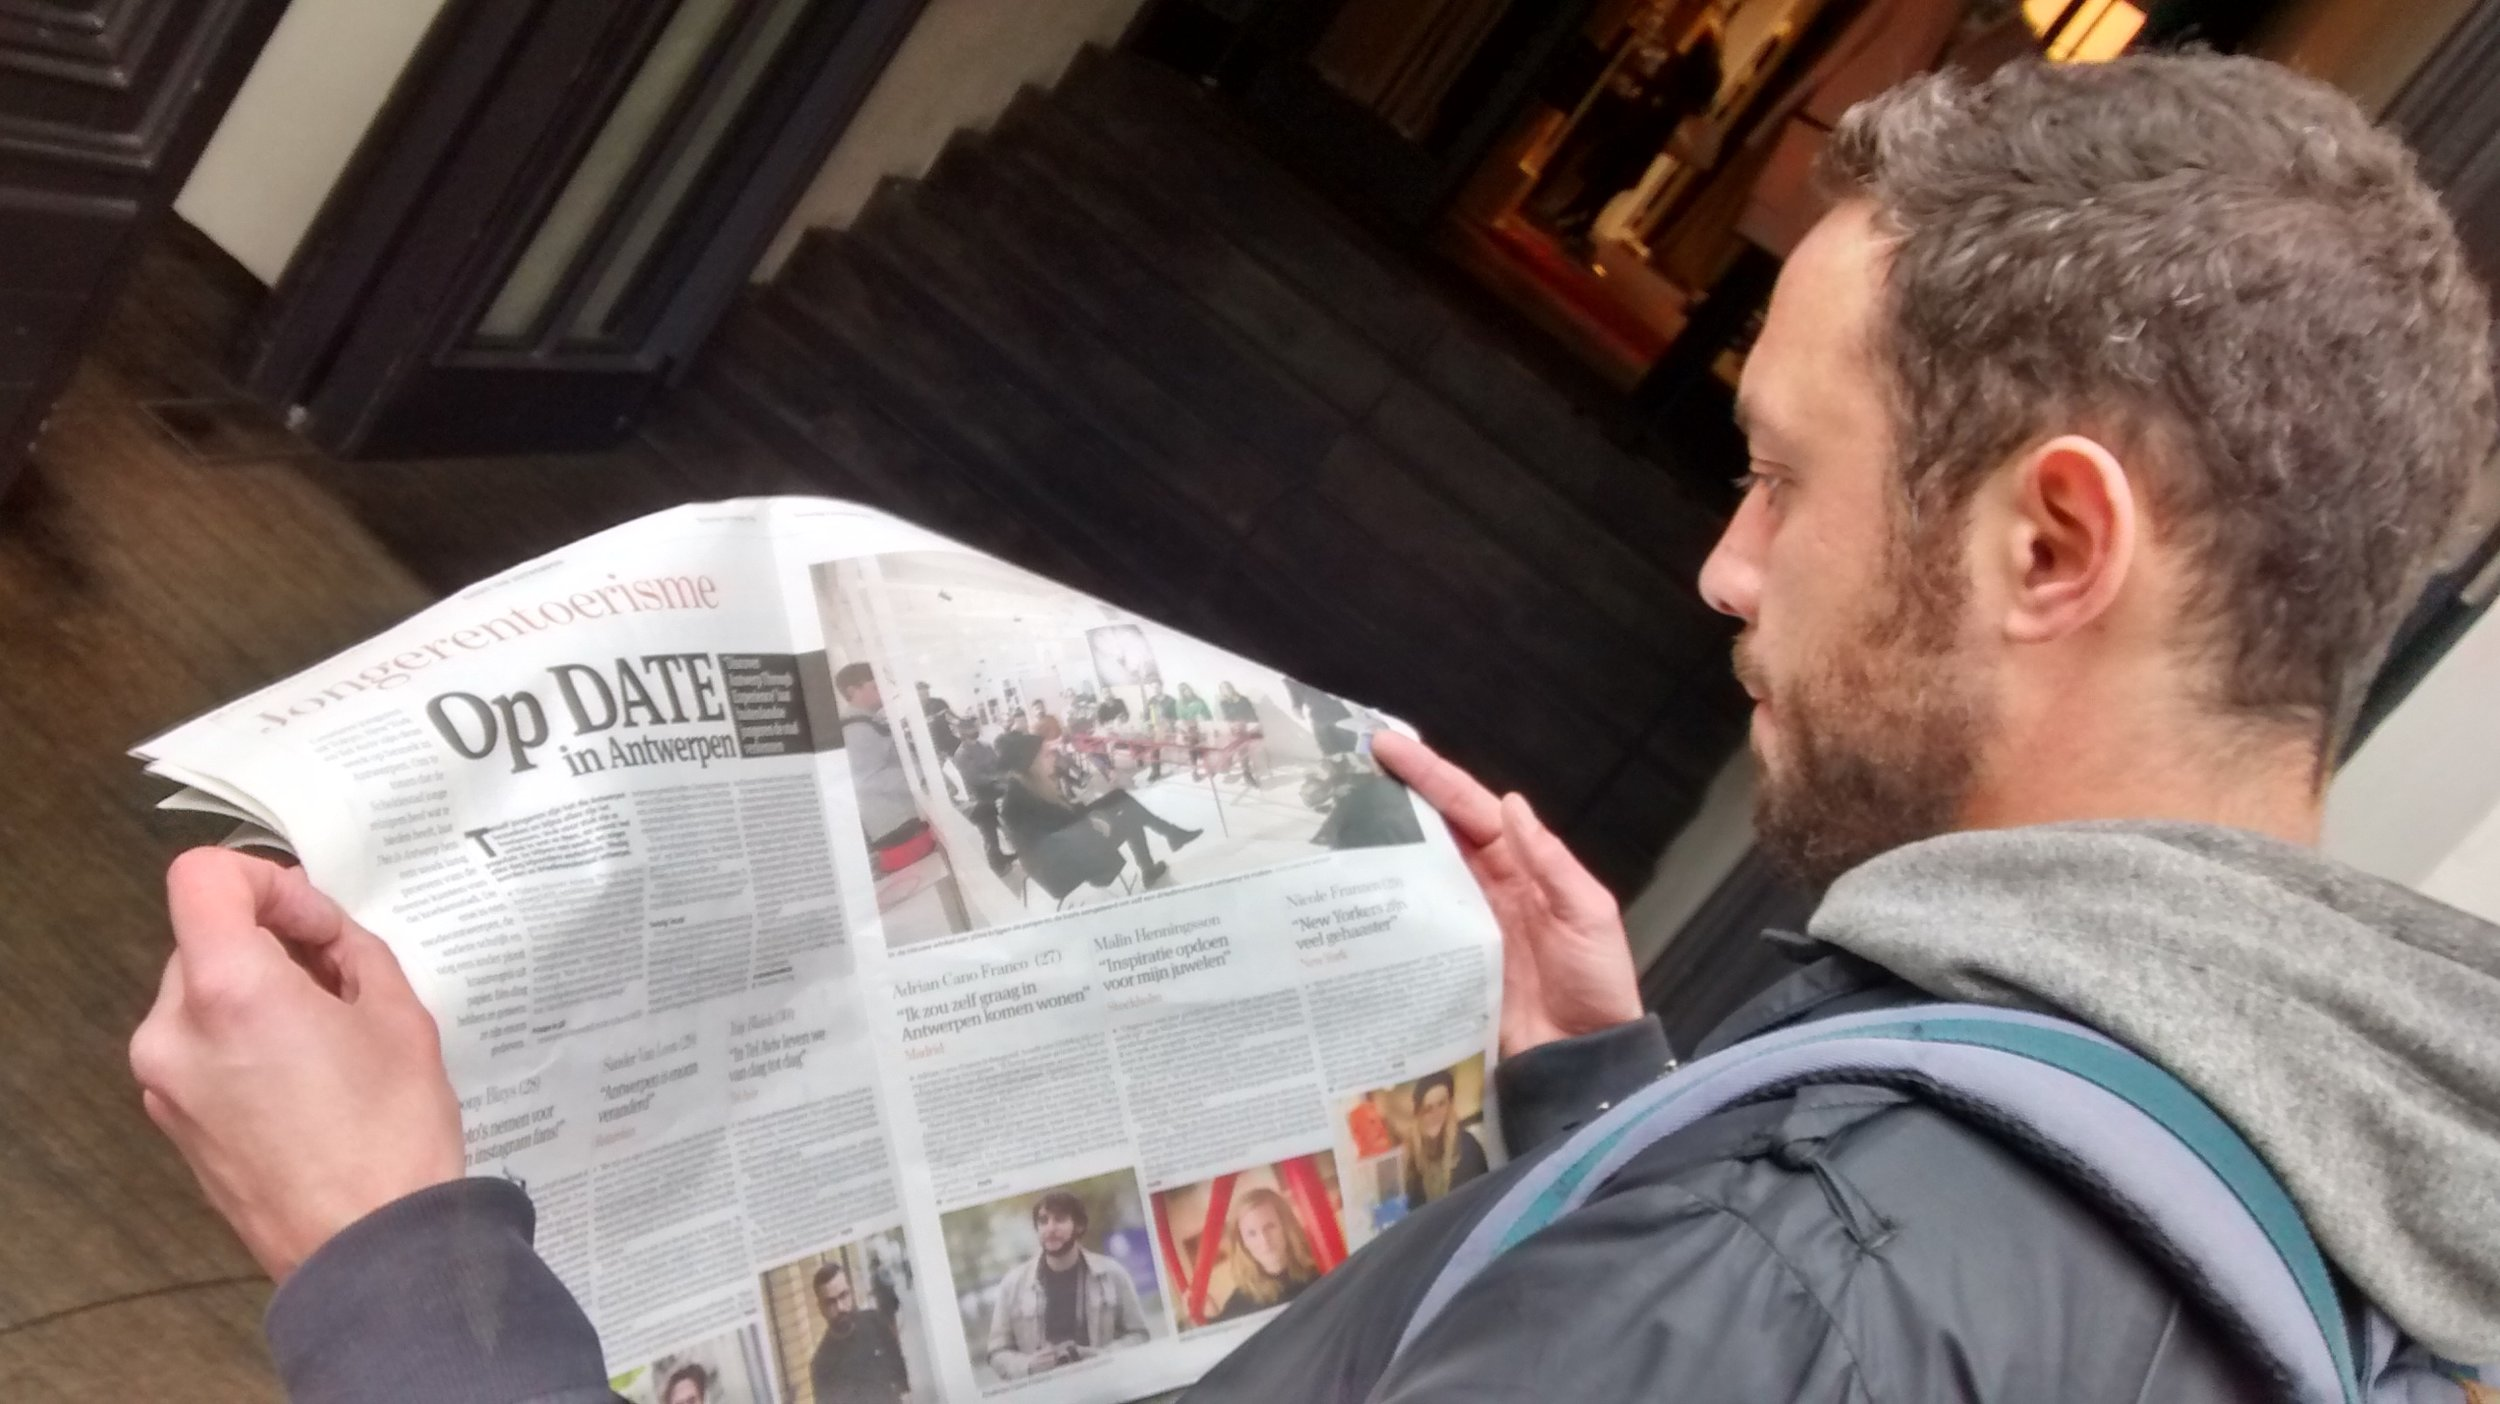 Me looking for myself in the local media coverage - Photo credit This is Antwerp